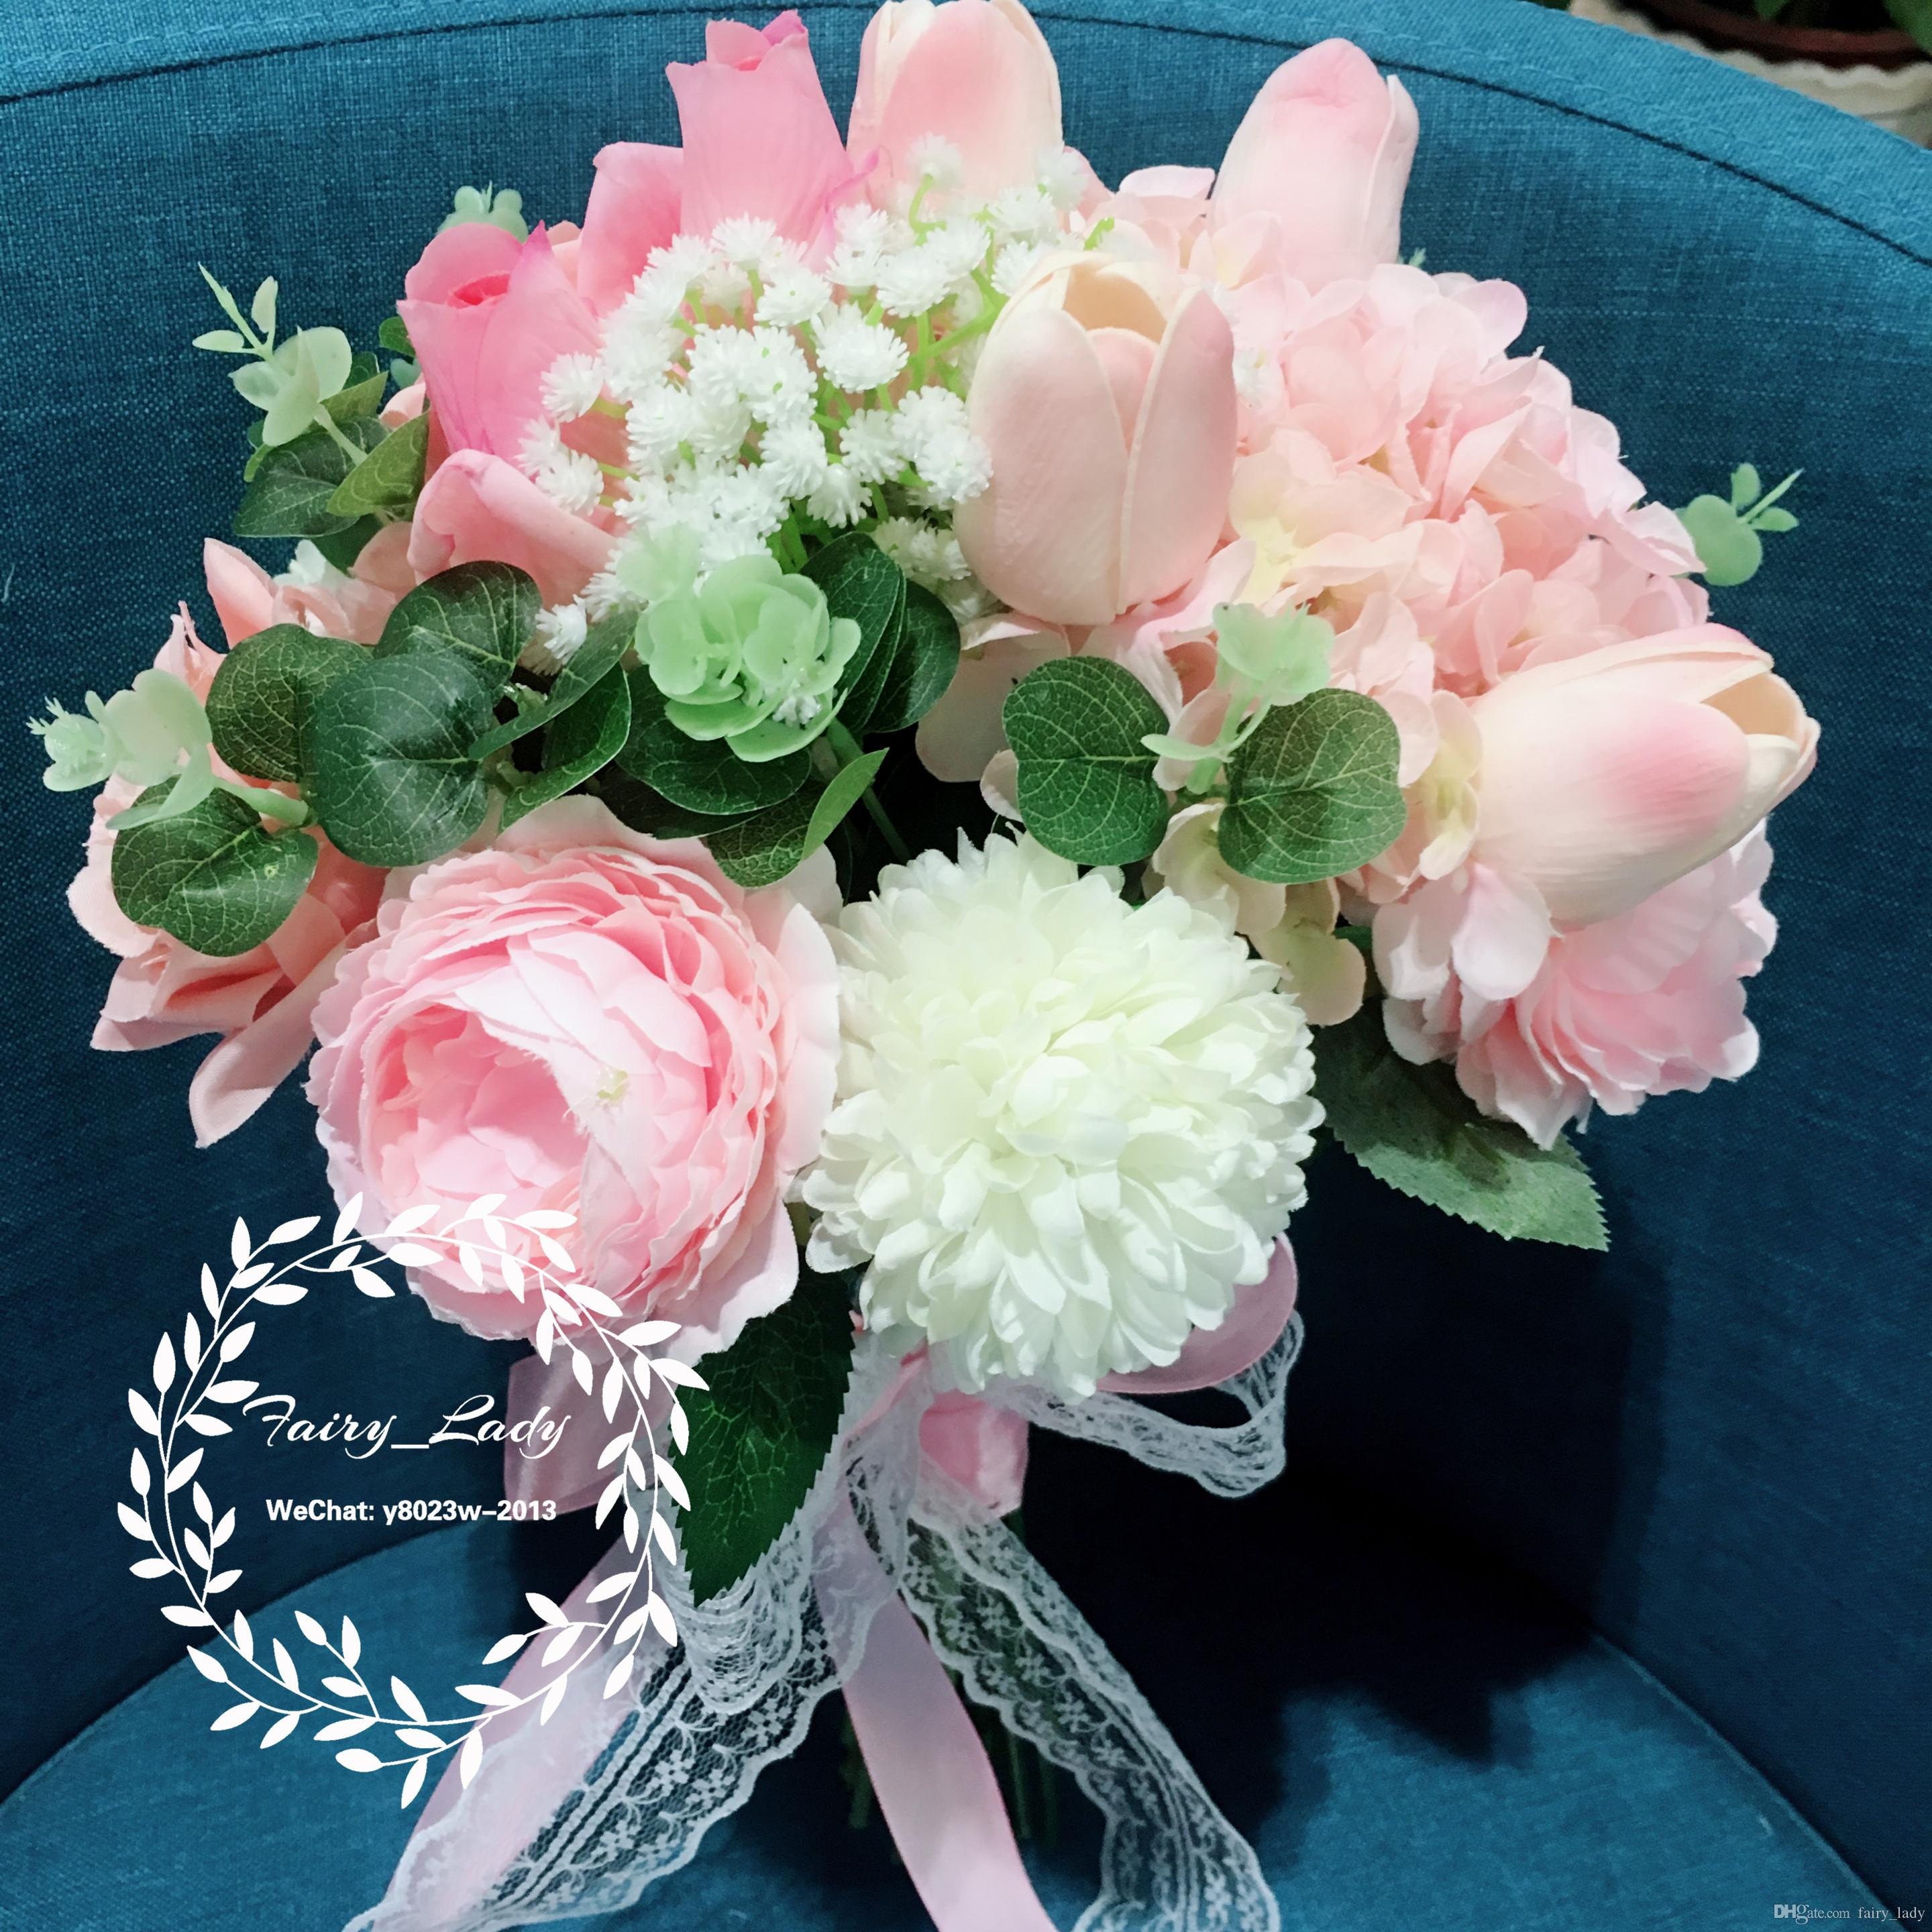 High end 100 real photos pink wedding bouquets lace handle home high end 100 real photos pink wedding bouquets lace handle home decoration 2018 artificial rose peony pageant bridal flowers for bride wedding flowers izmirmasajfo